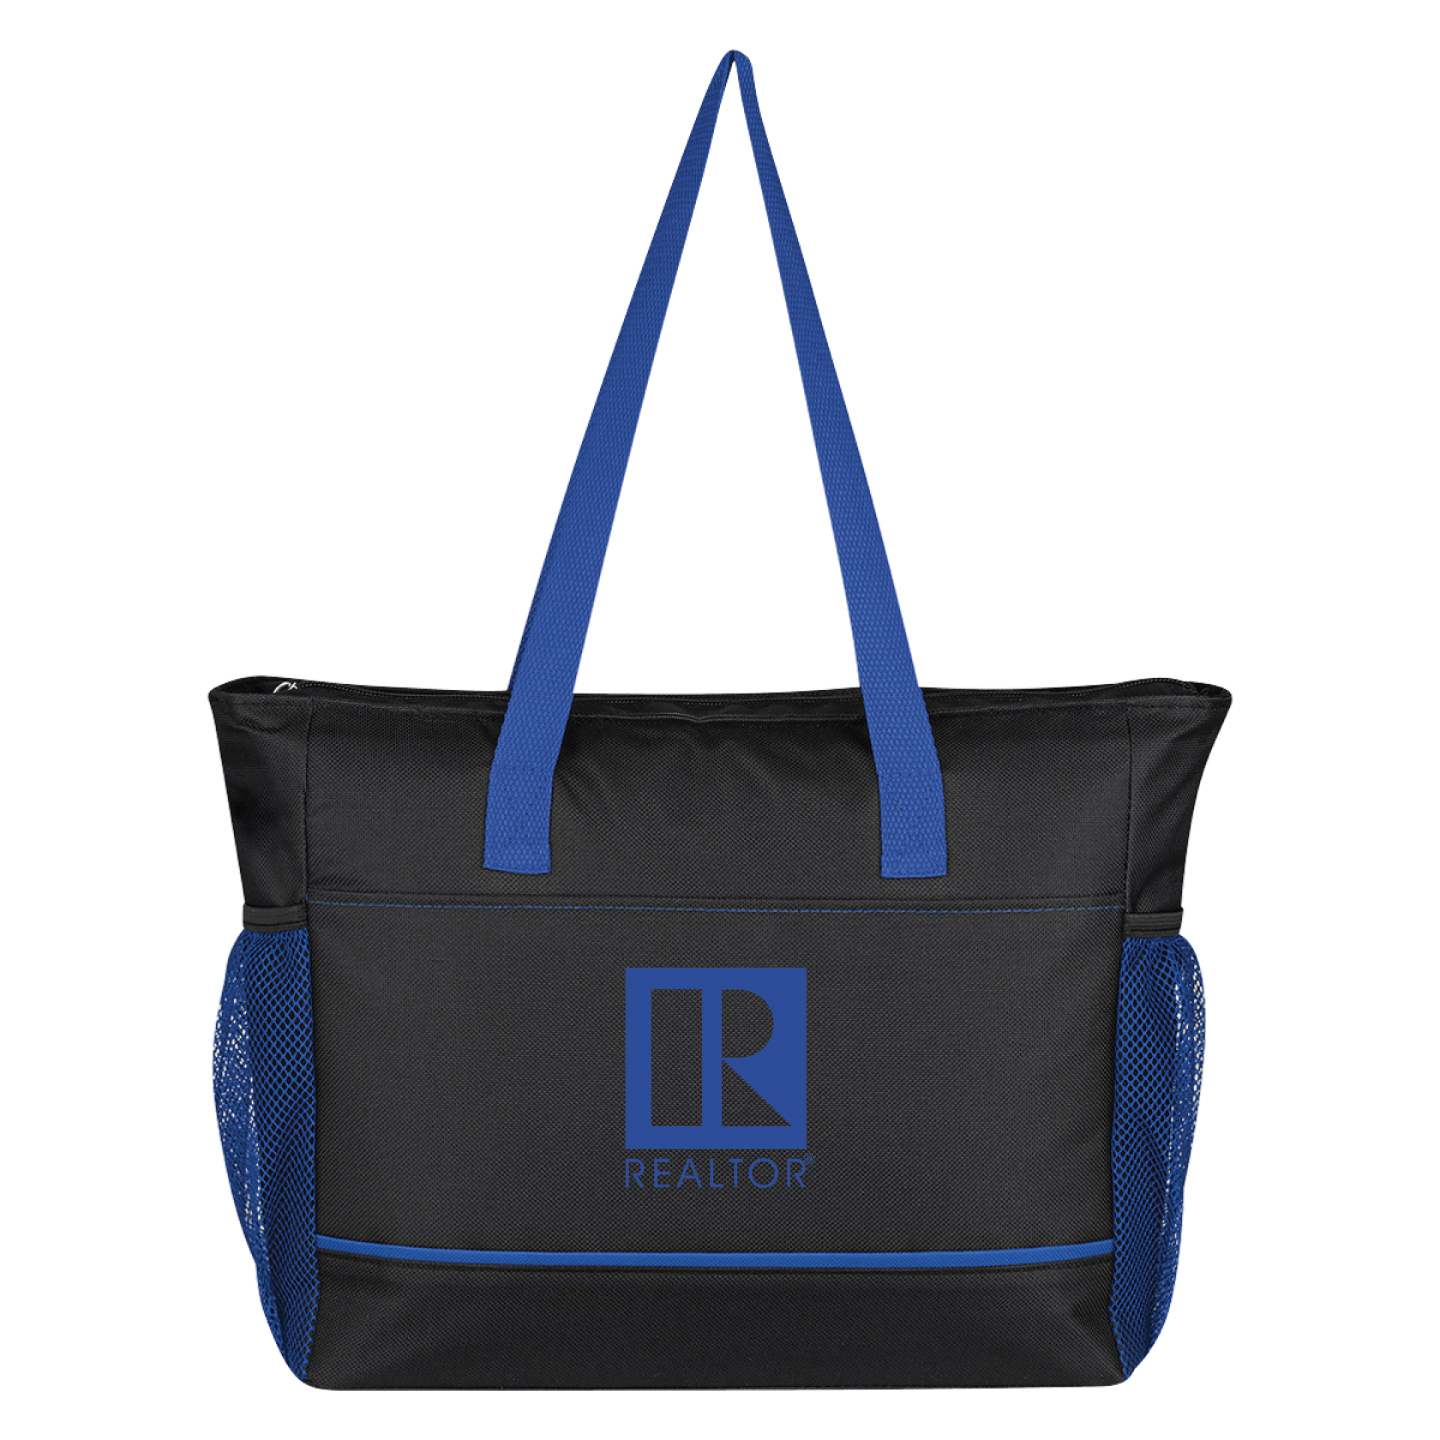 Cooler Tote Bag Canvas, Tote, Bag, Lunch, Gift, Store, Soda, Beer, Sport